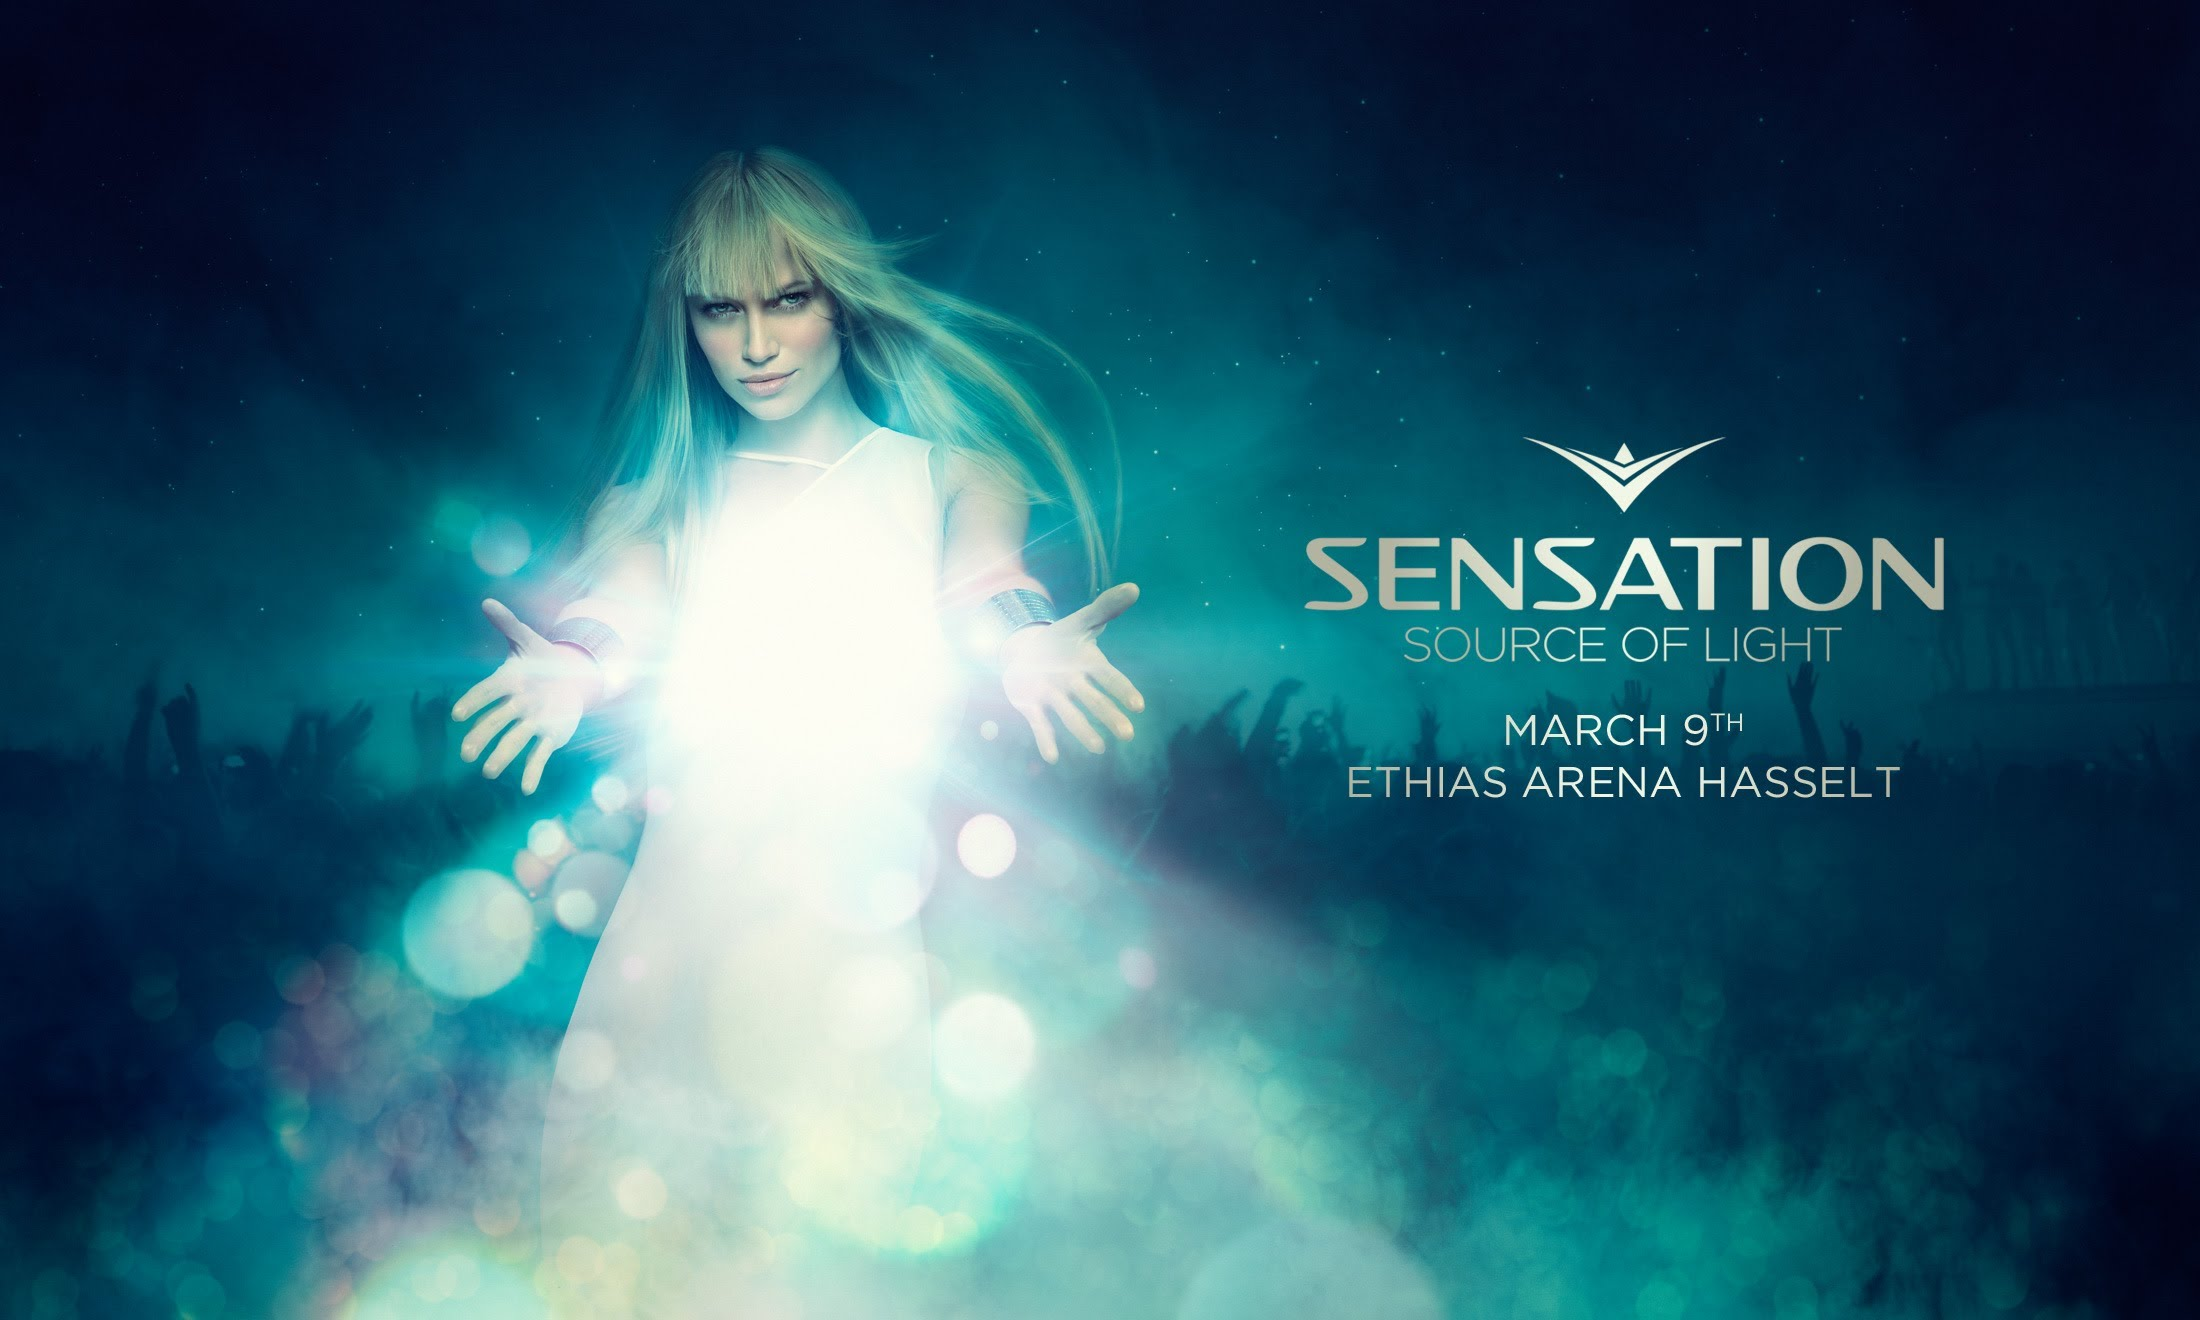 Trailer - Sensation 2013 - Source Of Light